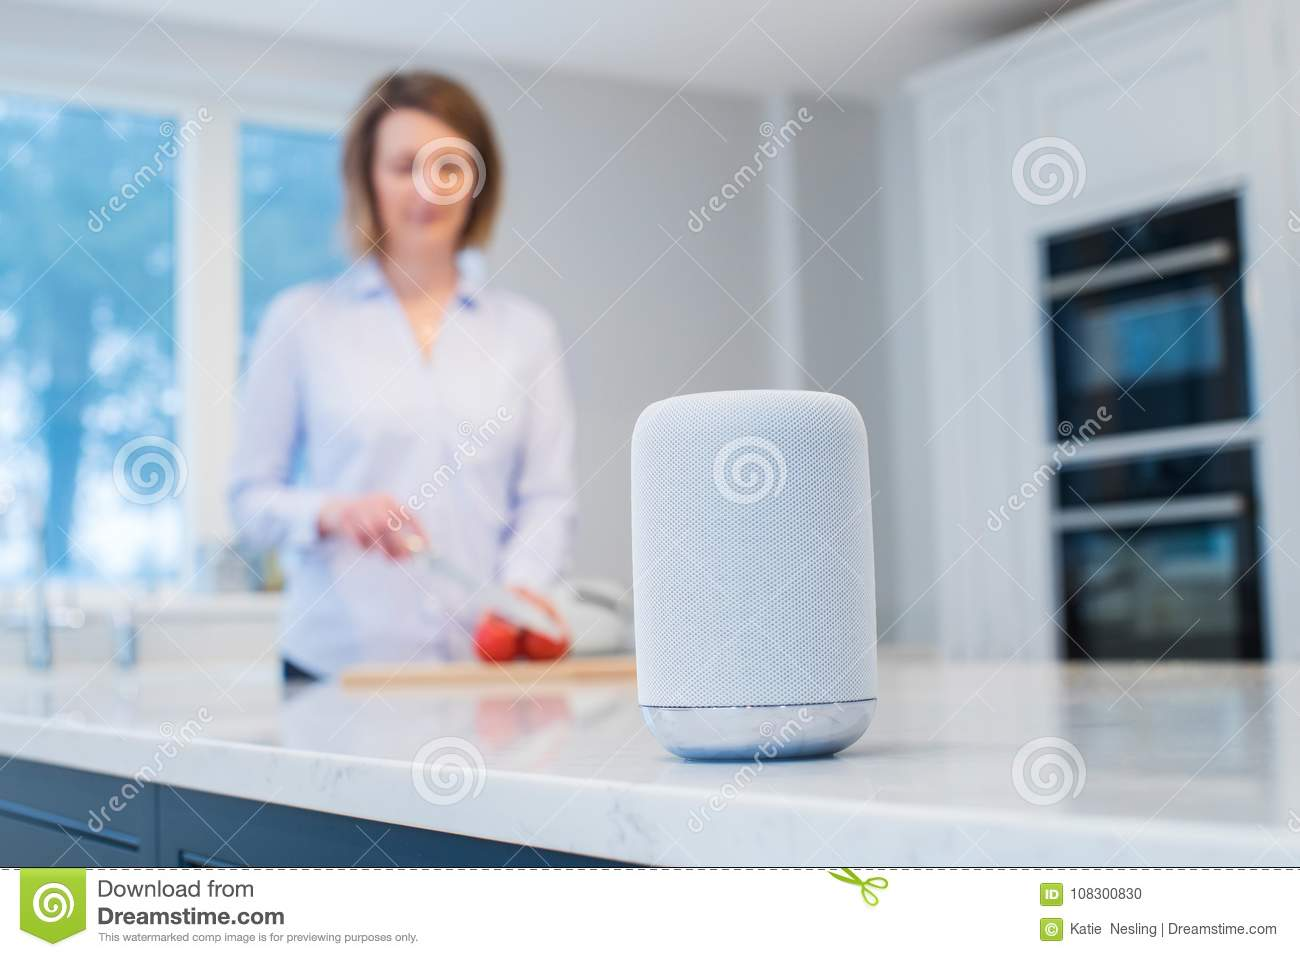 Woman Working In Kitchen With Smart Speaker In Foreground Stock ...